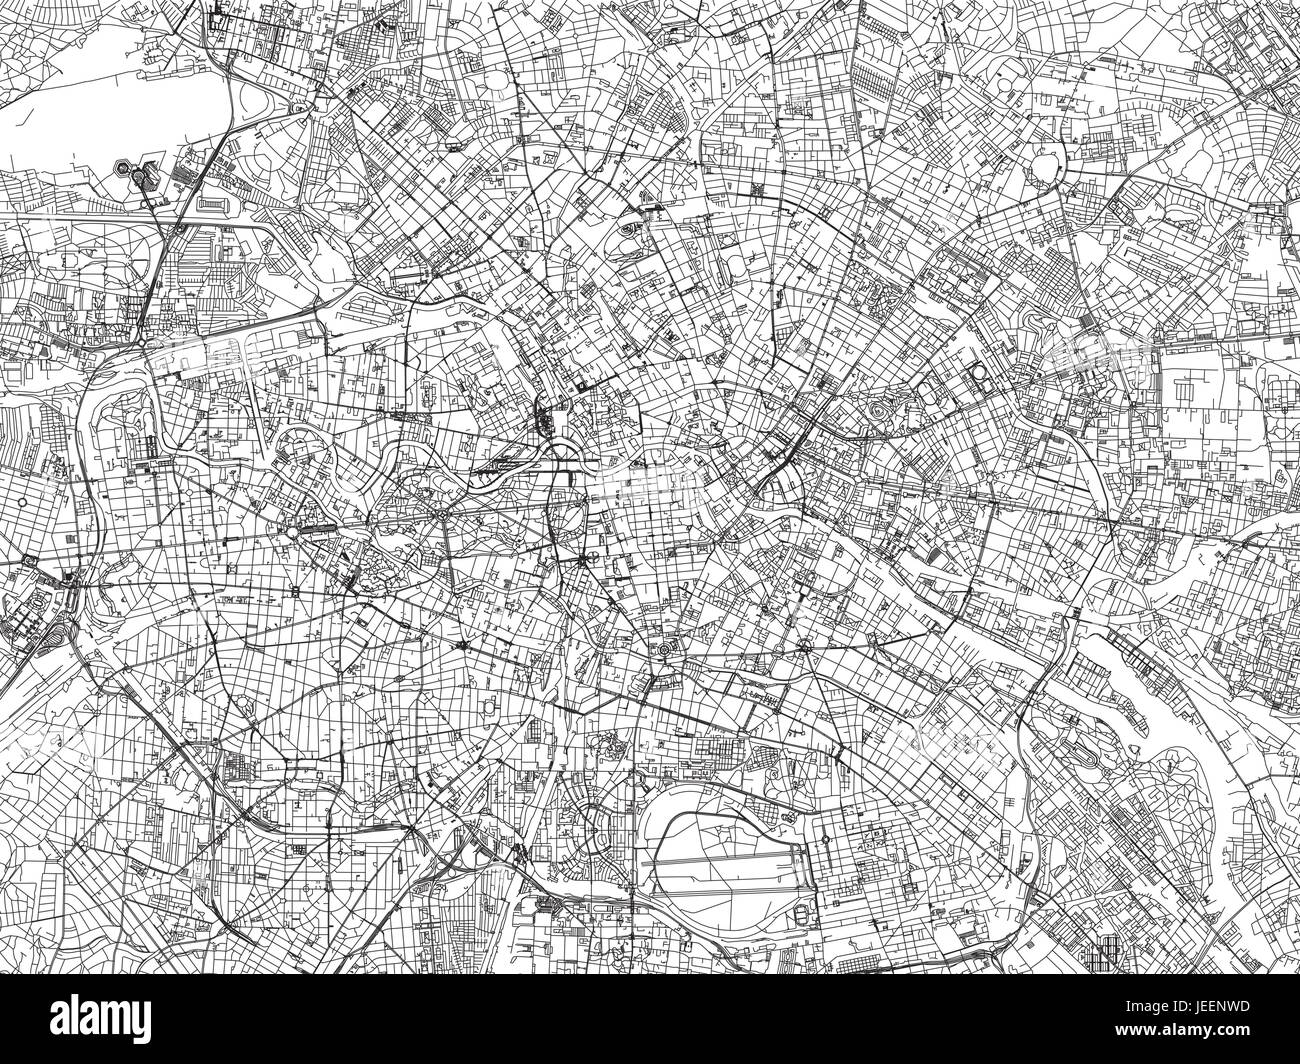 Berlin Map Satellite View Germany Stock Vector Art - Germany map view